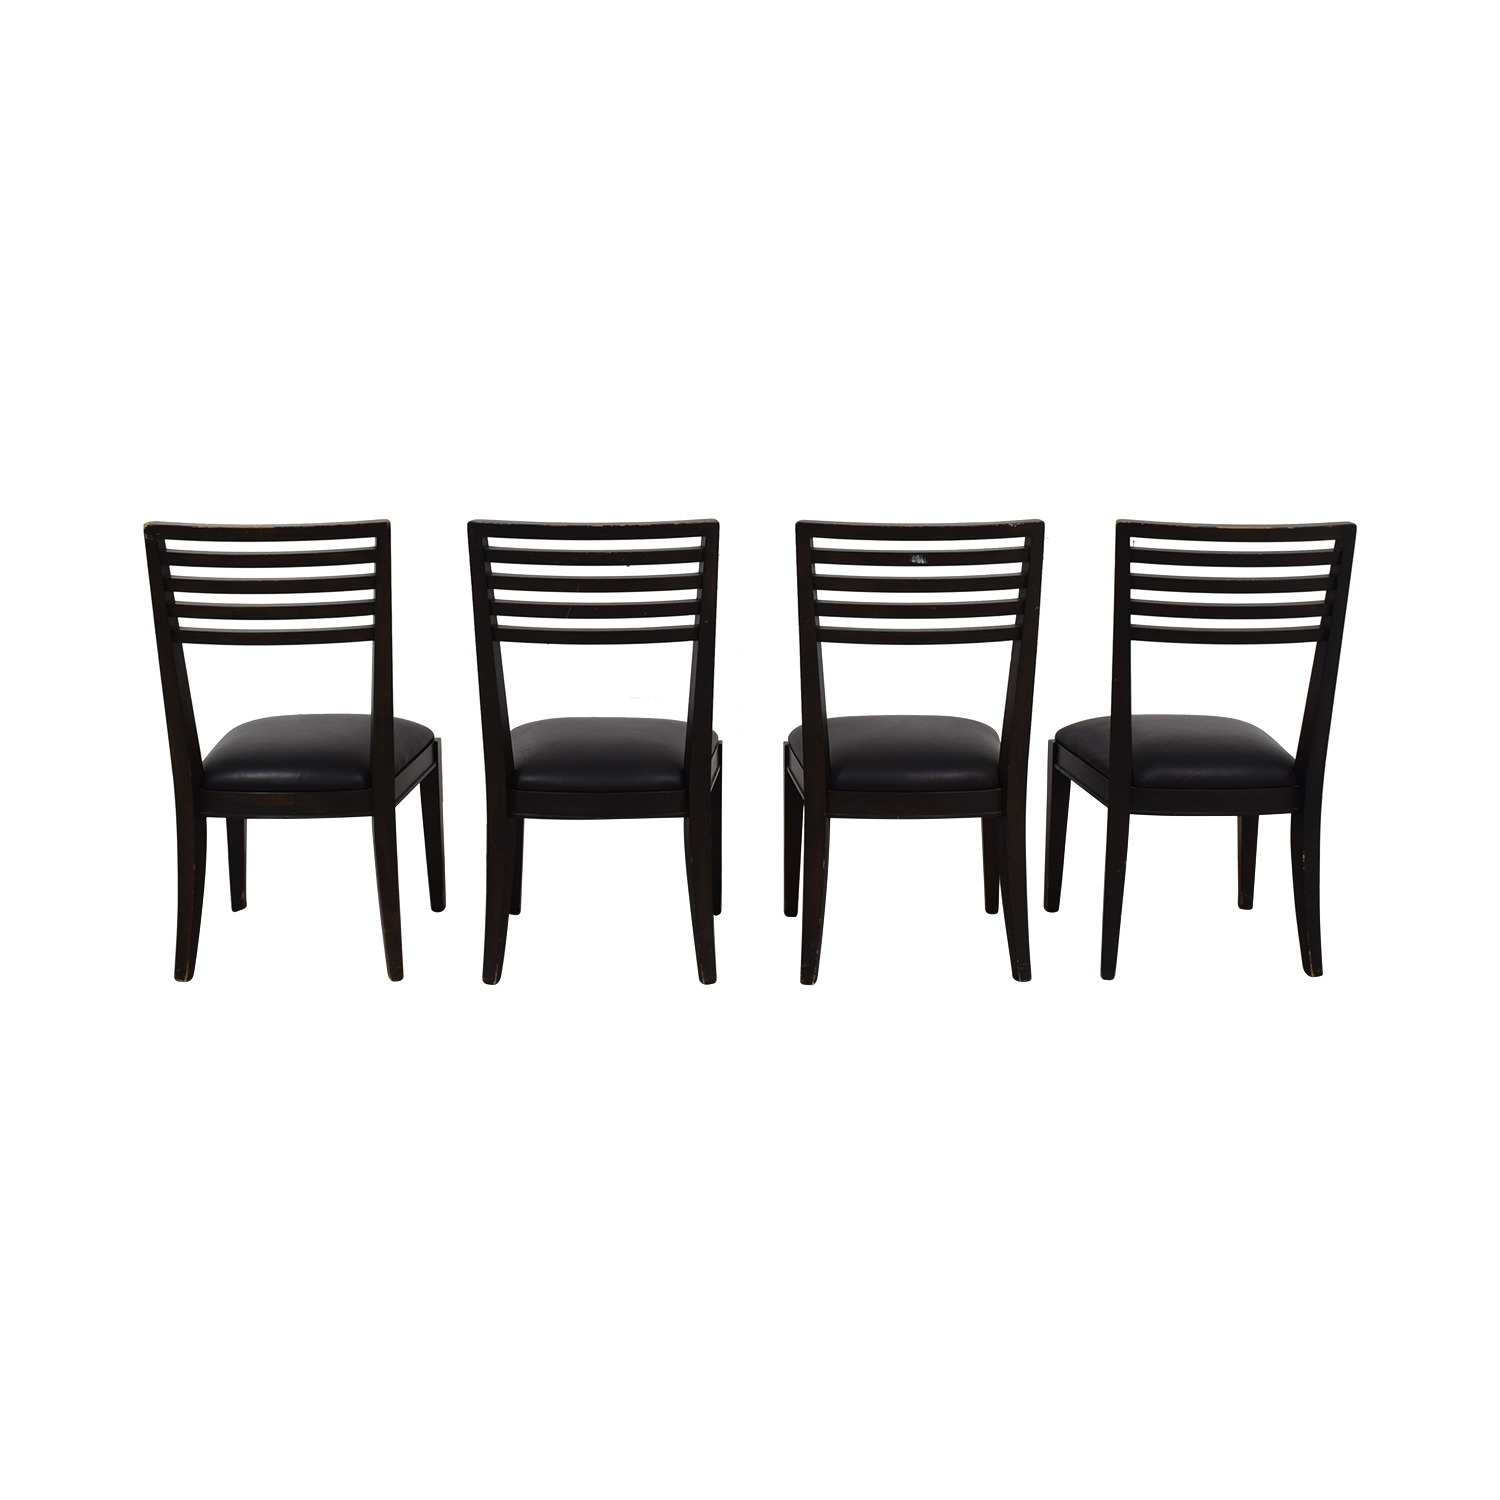 Crate & Barrel Black Dining Chairs / Dining Chairs